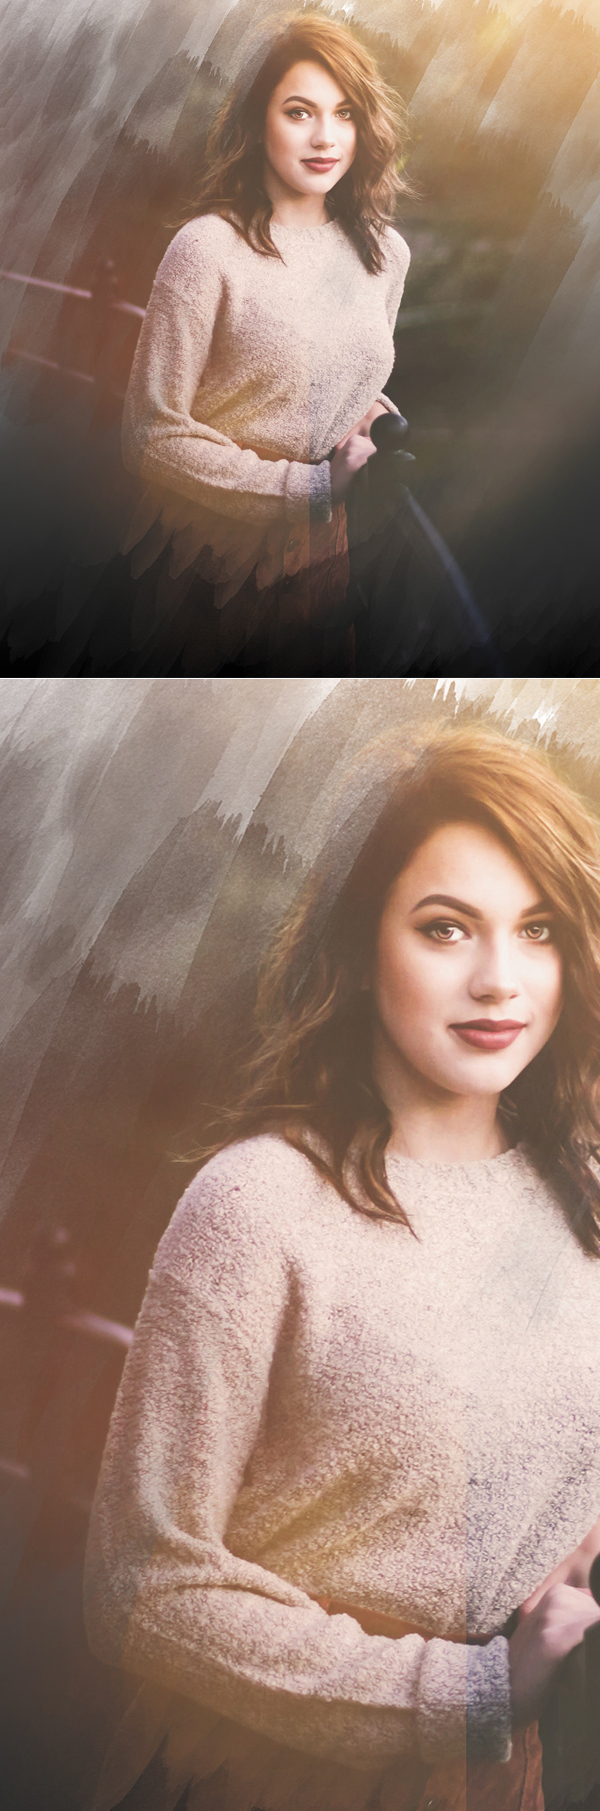 Free Brush effect Image PSD Template